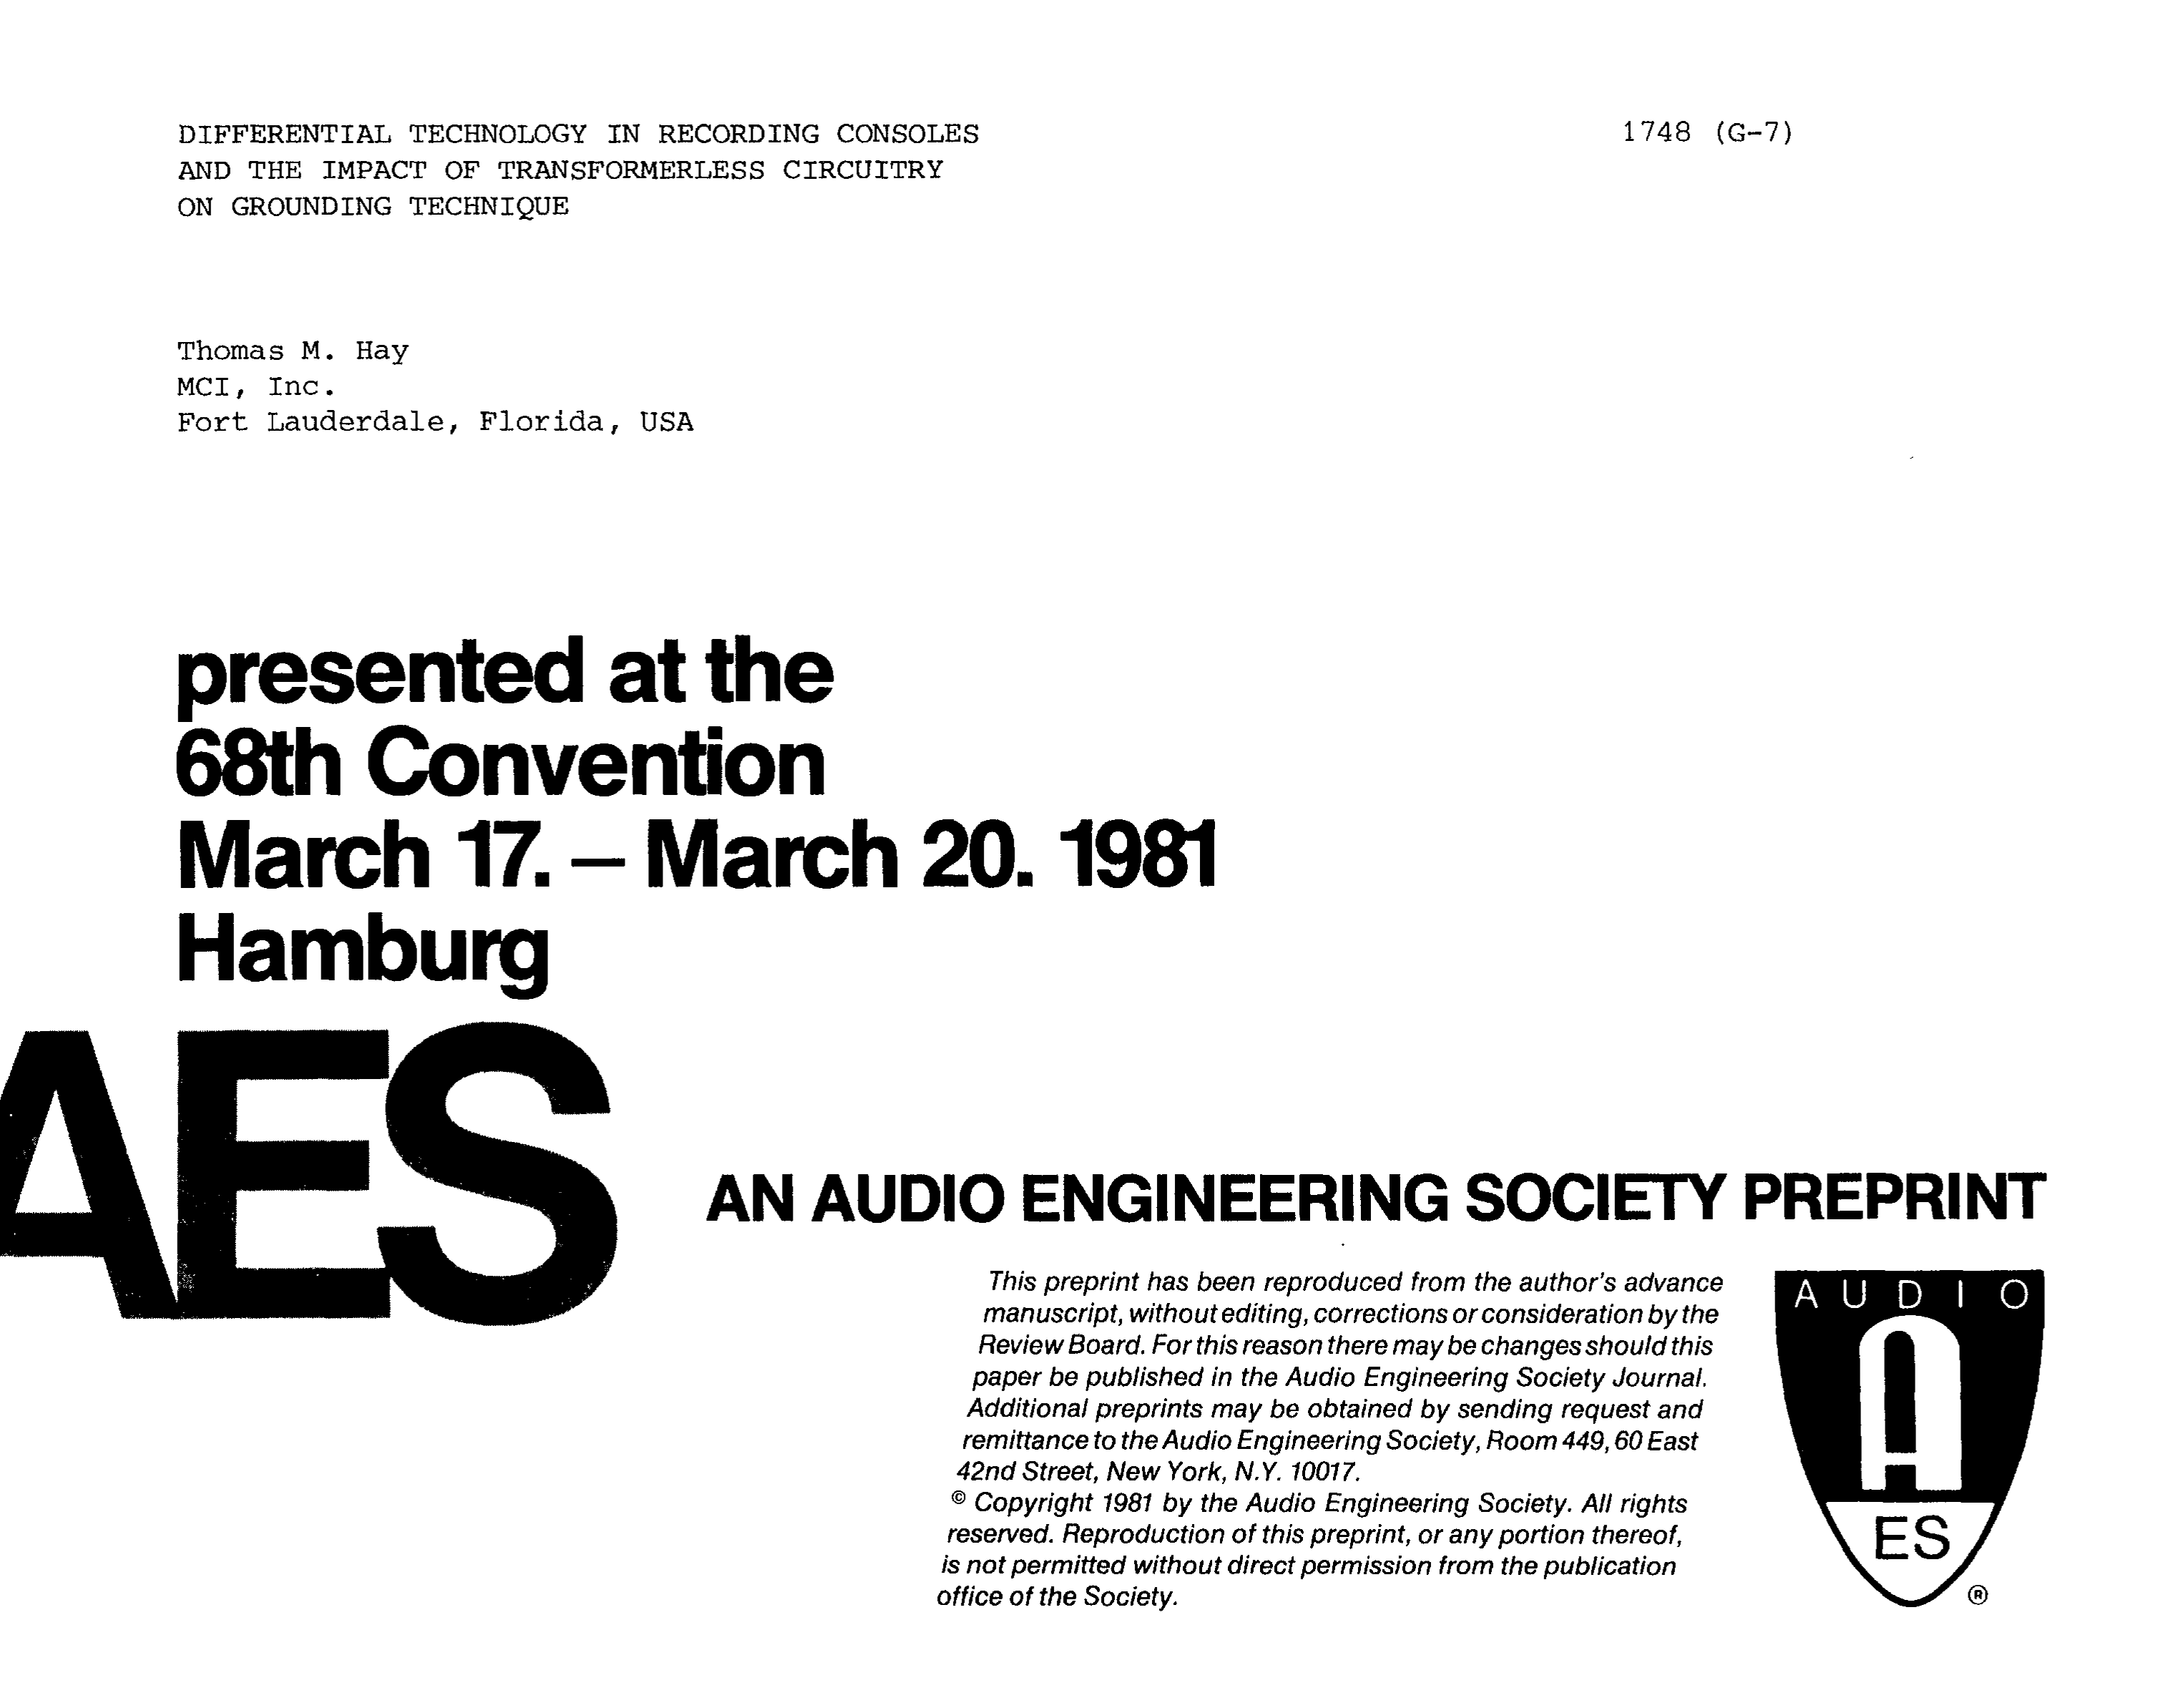 Aes E Library Differential Technology In Recording Consoles And 1450 Microwave Oven Schematic Image Touch Control Panel Circuit The Impact Of Transformerless Circuitry On Grounding Technique